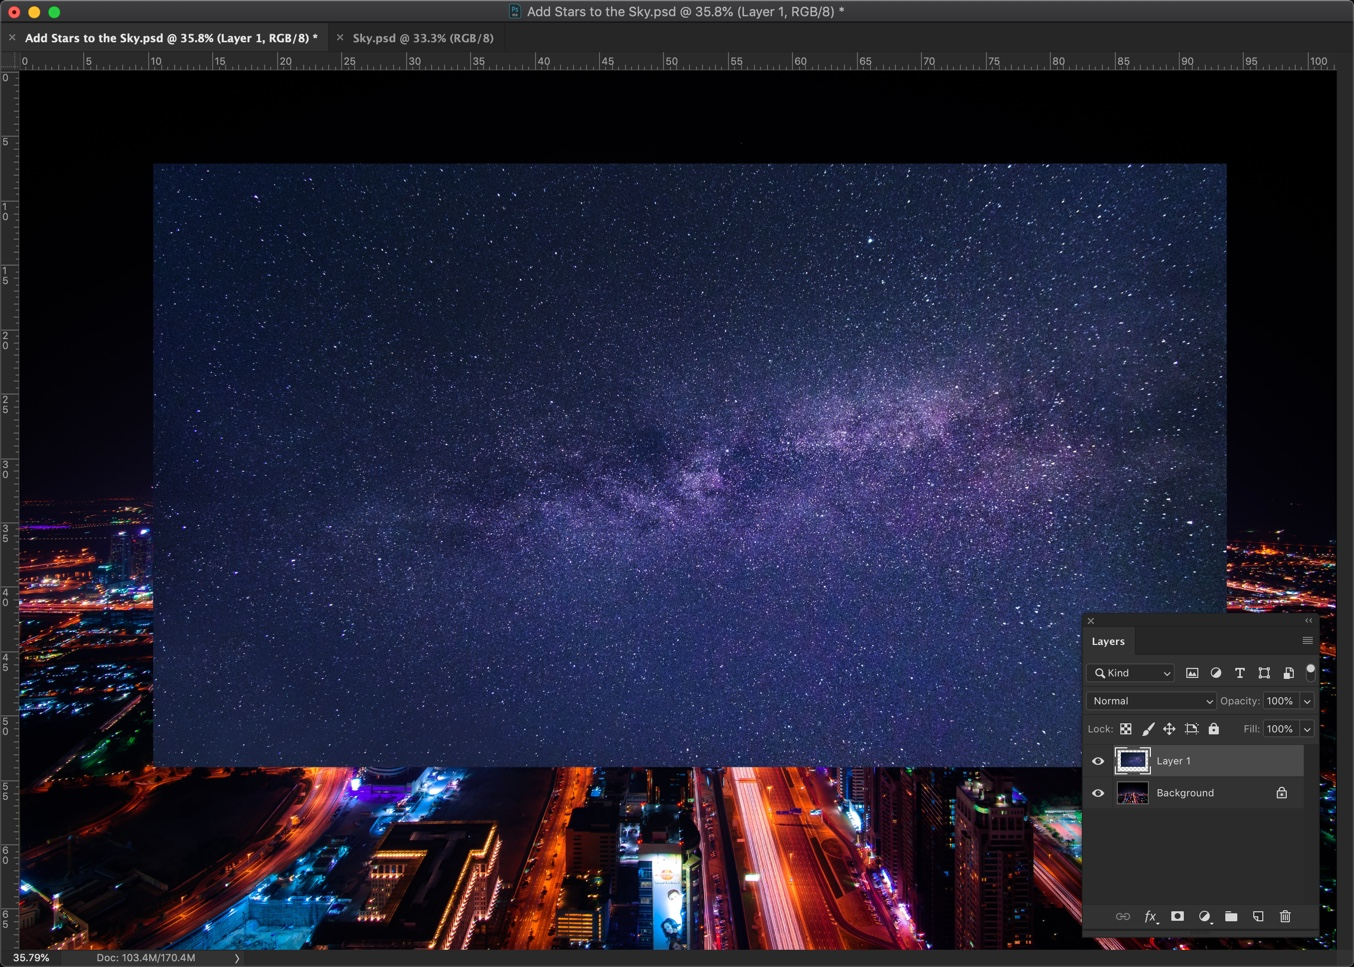 3-1 - How to add stars to the sky in Photoshop